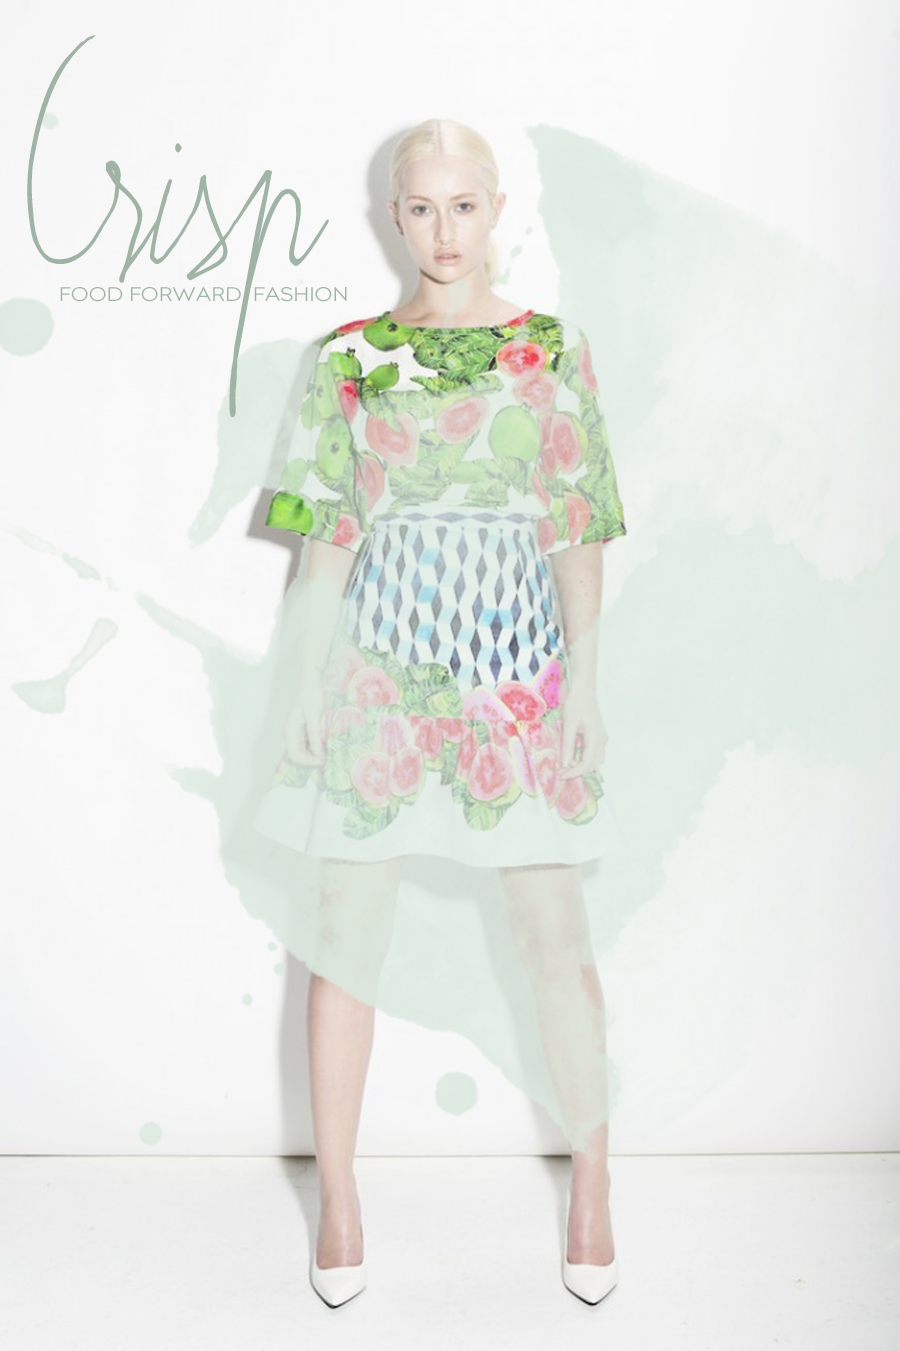 Food Print Clothing For Spring/Summer | Dine X Design